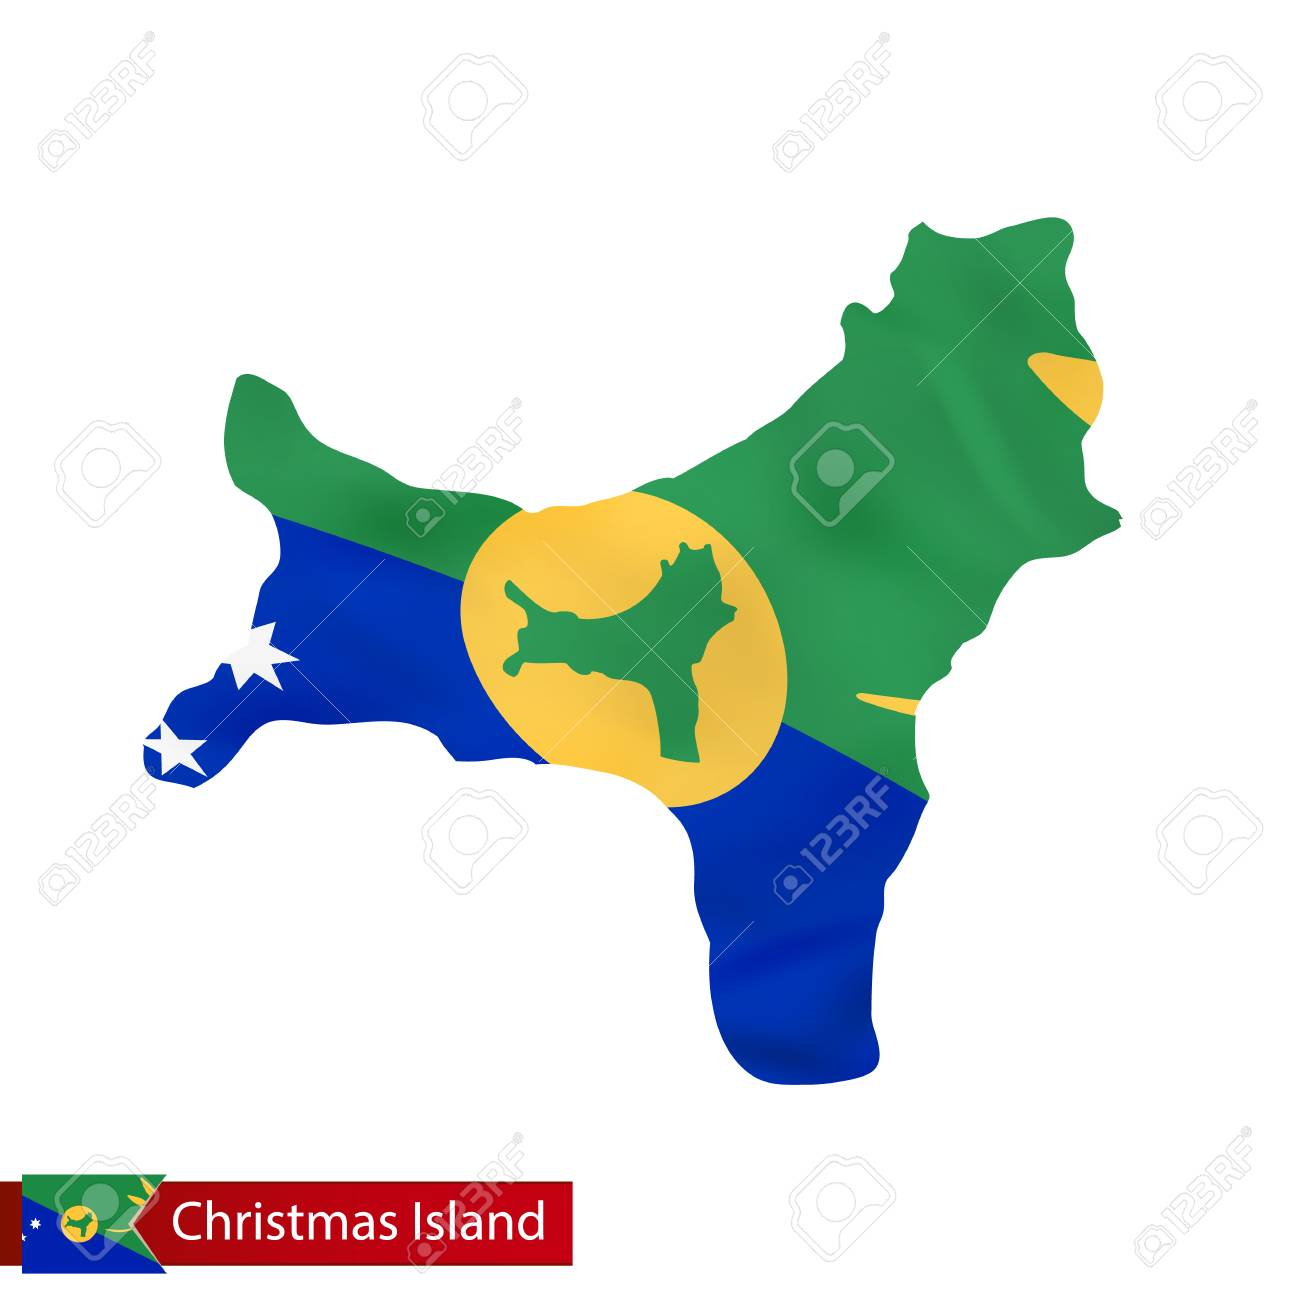 Christmas Island map with waving flag of country. on pitcairn islands, solomon islands, kauai island outline map, antarctica map, easter island map, pitcairn islands map, usa government map, marshall islands, asia map, fiji map, solomon islands map, cayman islands, northern mariana islands, cocos islands, south georgia and the south sandwich islands, faroe islands, pacific isles map, australia map, mcdonald islands map, islands of kiribati map, indian ocean, new caledonia, pacific ocean map, macau map, united states minor outlying islands map, southeast asia, cook islands, turks and caicos islands, maldives map, galápagos islands map, nauru map, sunset island ocean city maryland map, norfolk island, pacific islands map,